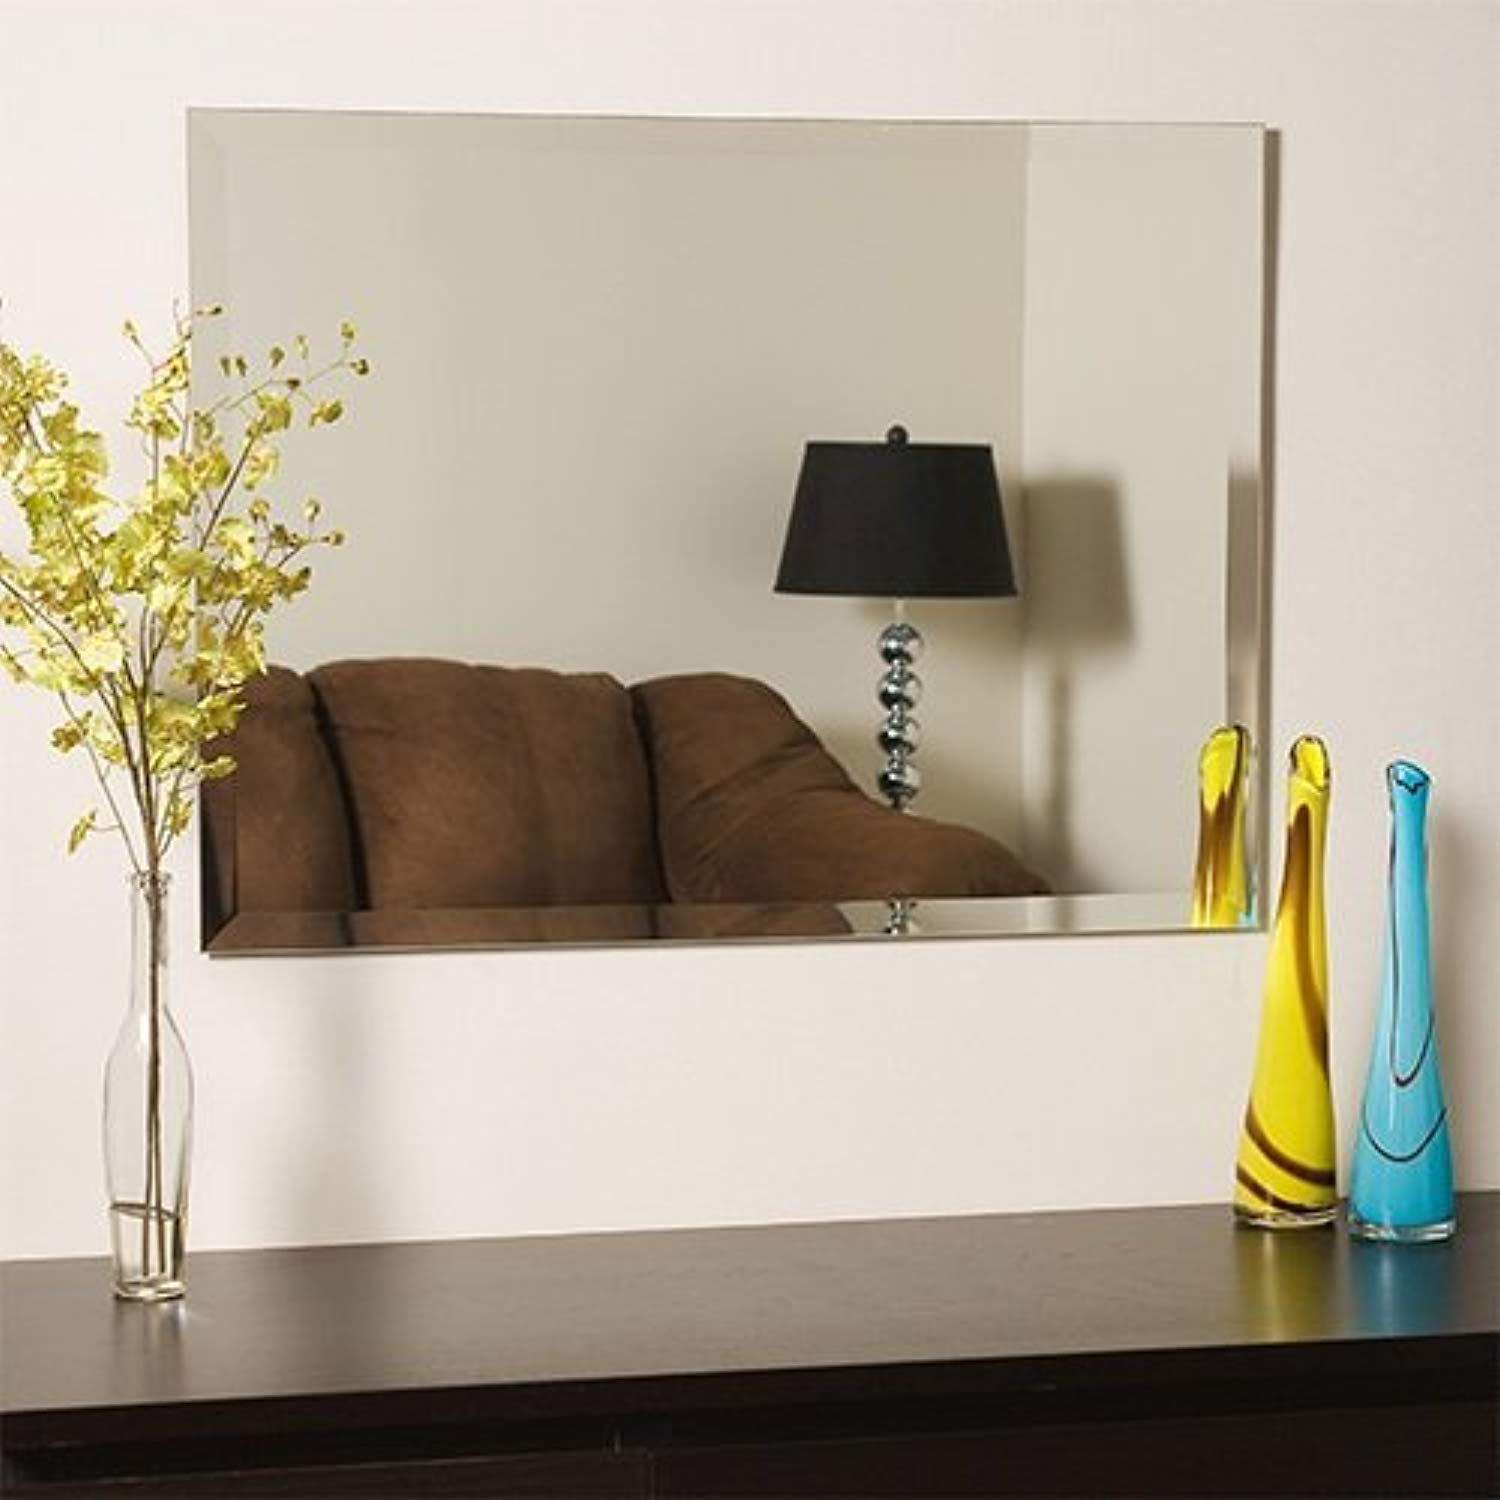 IRA Frameless Mirror for Wash Basin - IRA Furniture